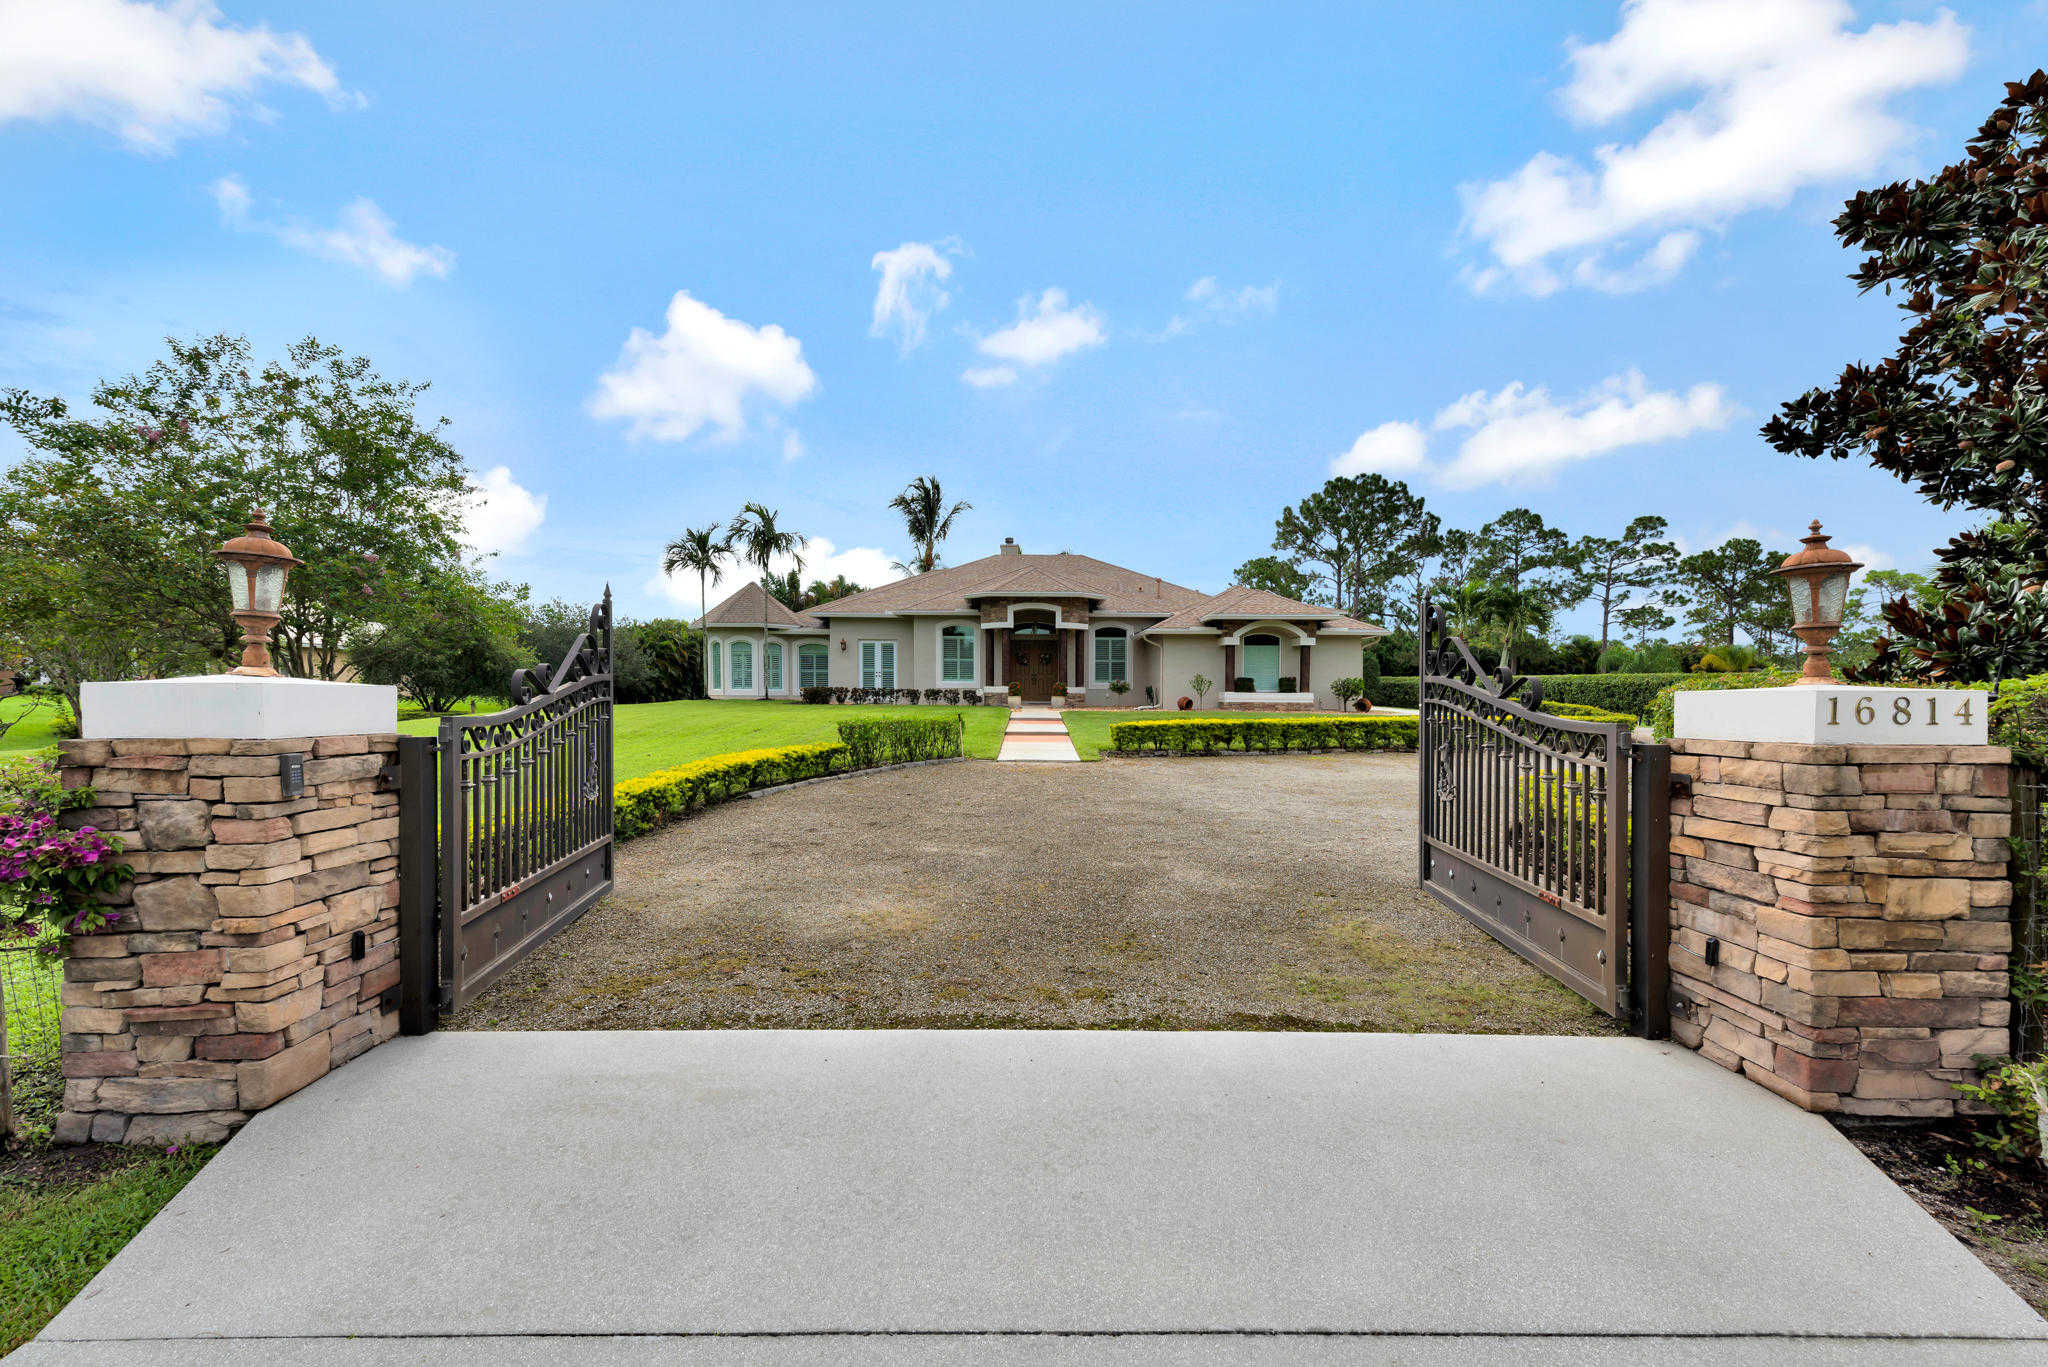 16814 Mellen Lane, Jupiter, FL 33478 now has a new price of $824,800!